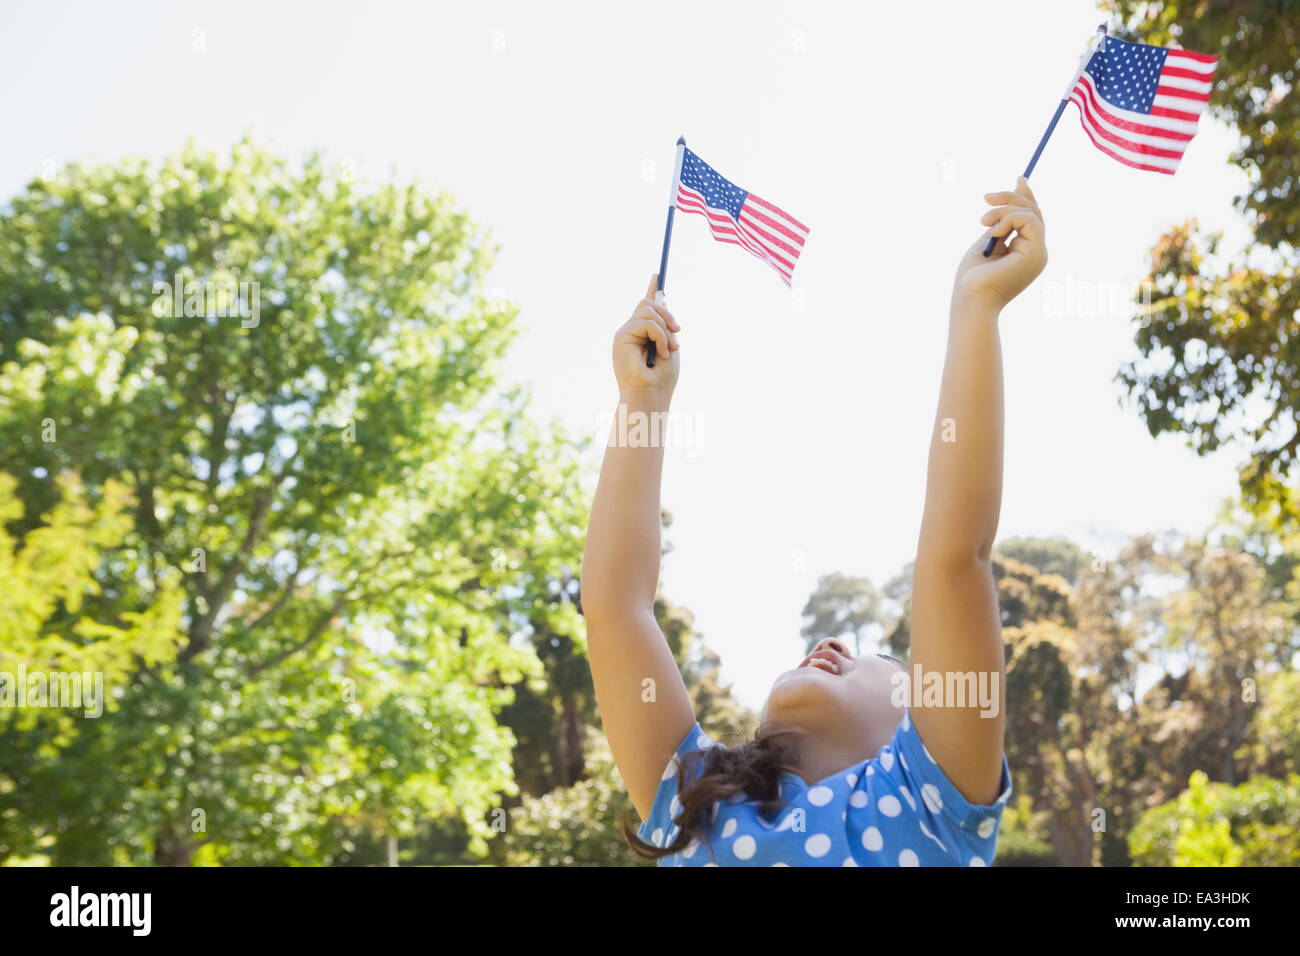 Girl holding up deux drapeaux américains at park Photo Stock